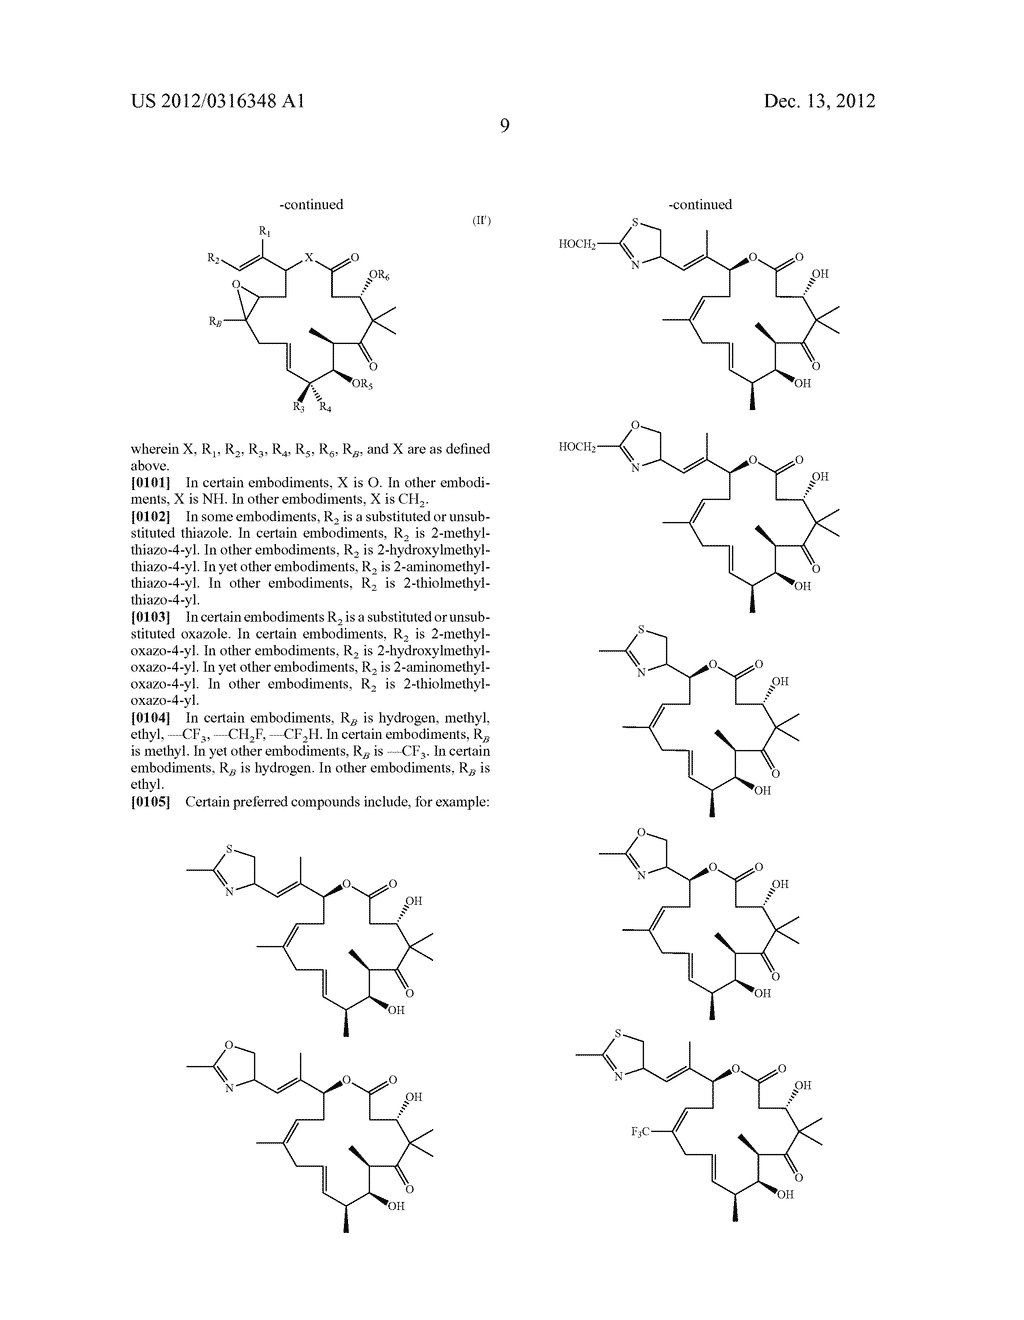 SYNTHESIS OF EPOTHILONES, INTERMEDIATES THERETO AND ANALOGUES THEREOF - diagram, schematic, and image 80